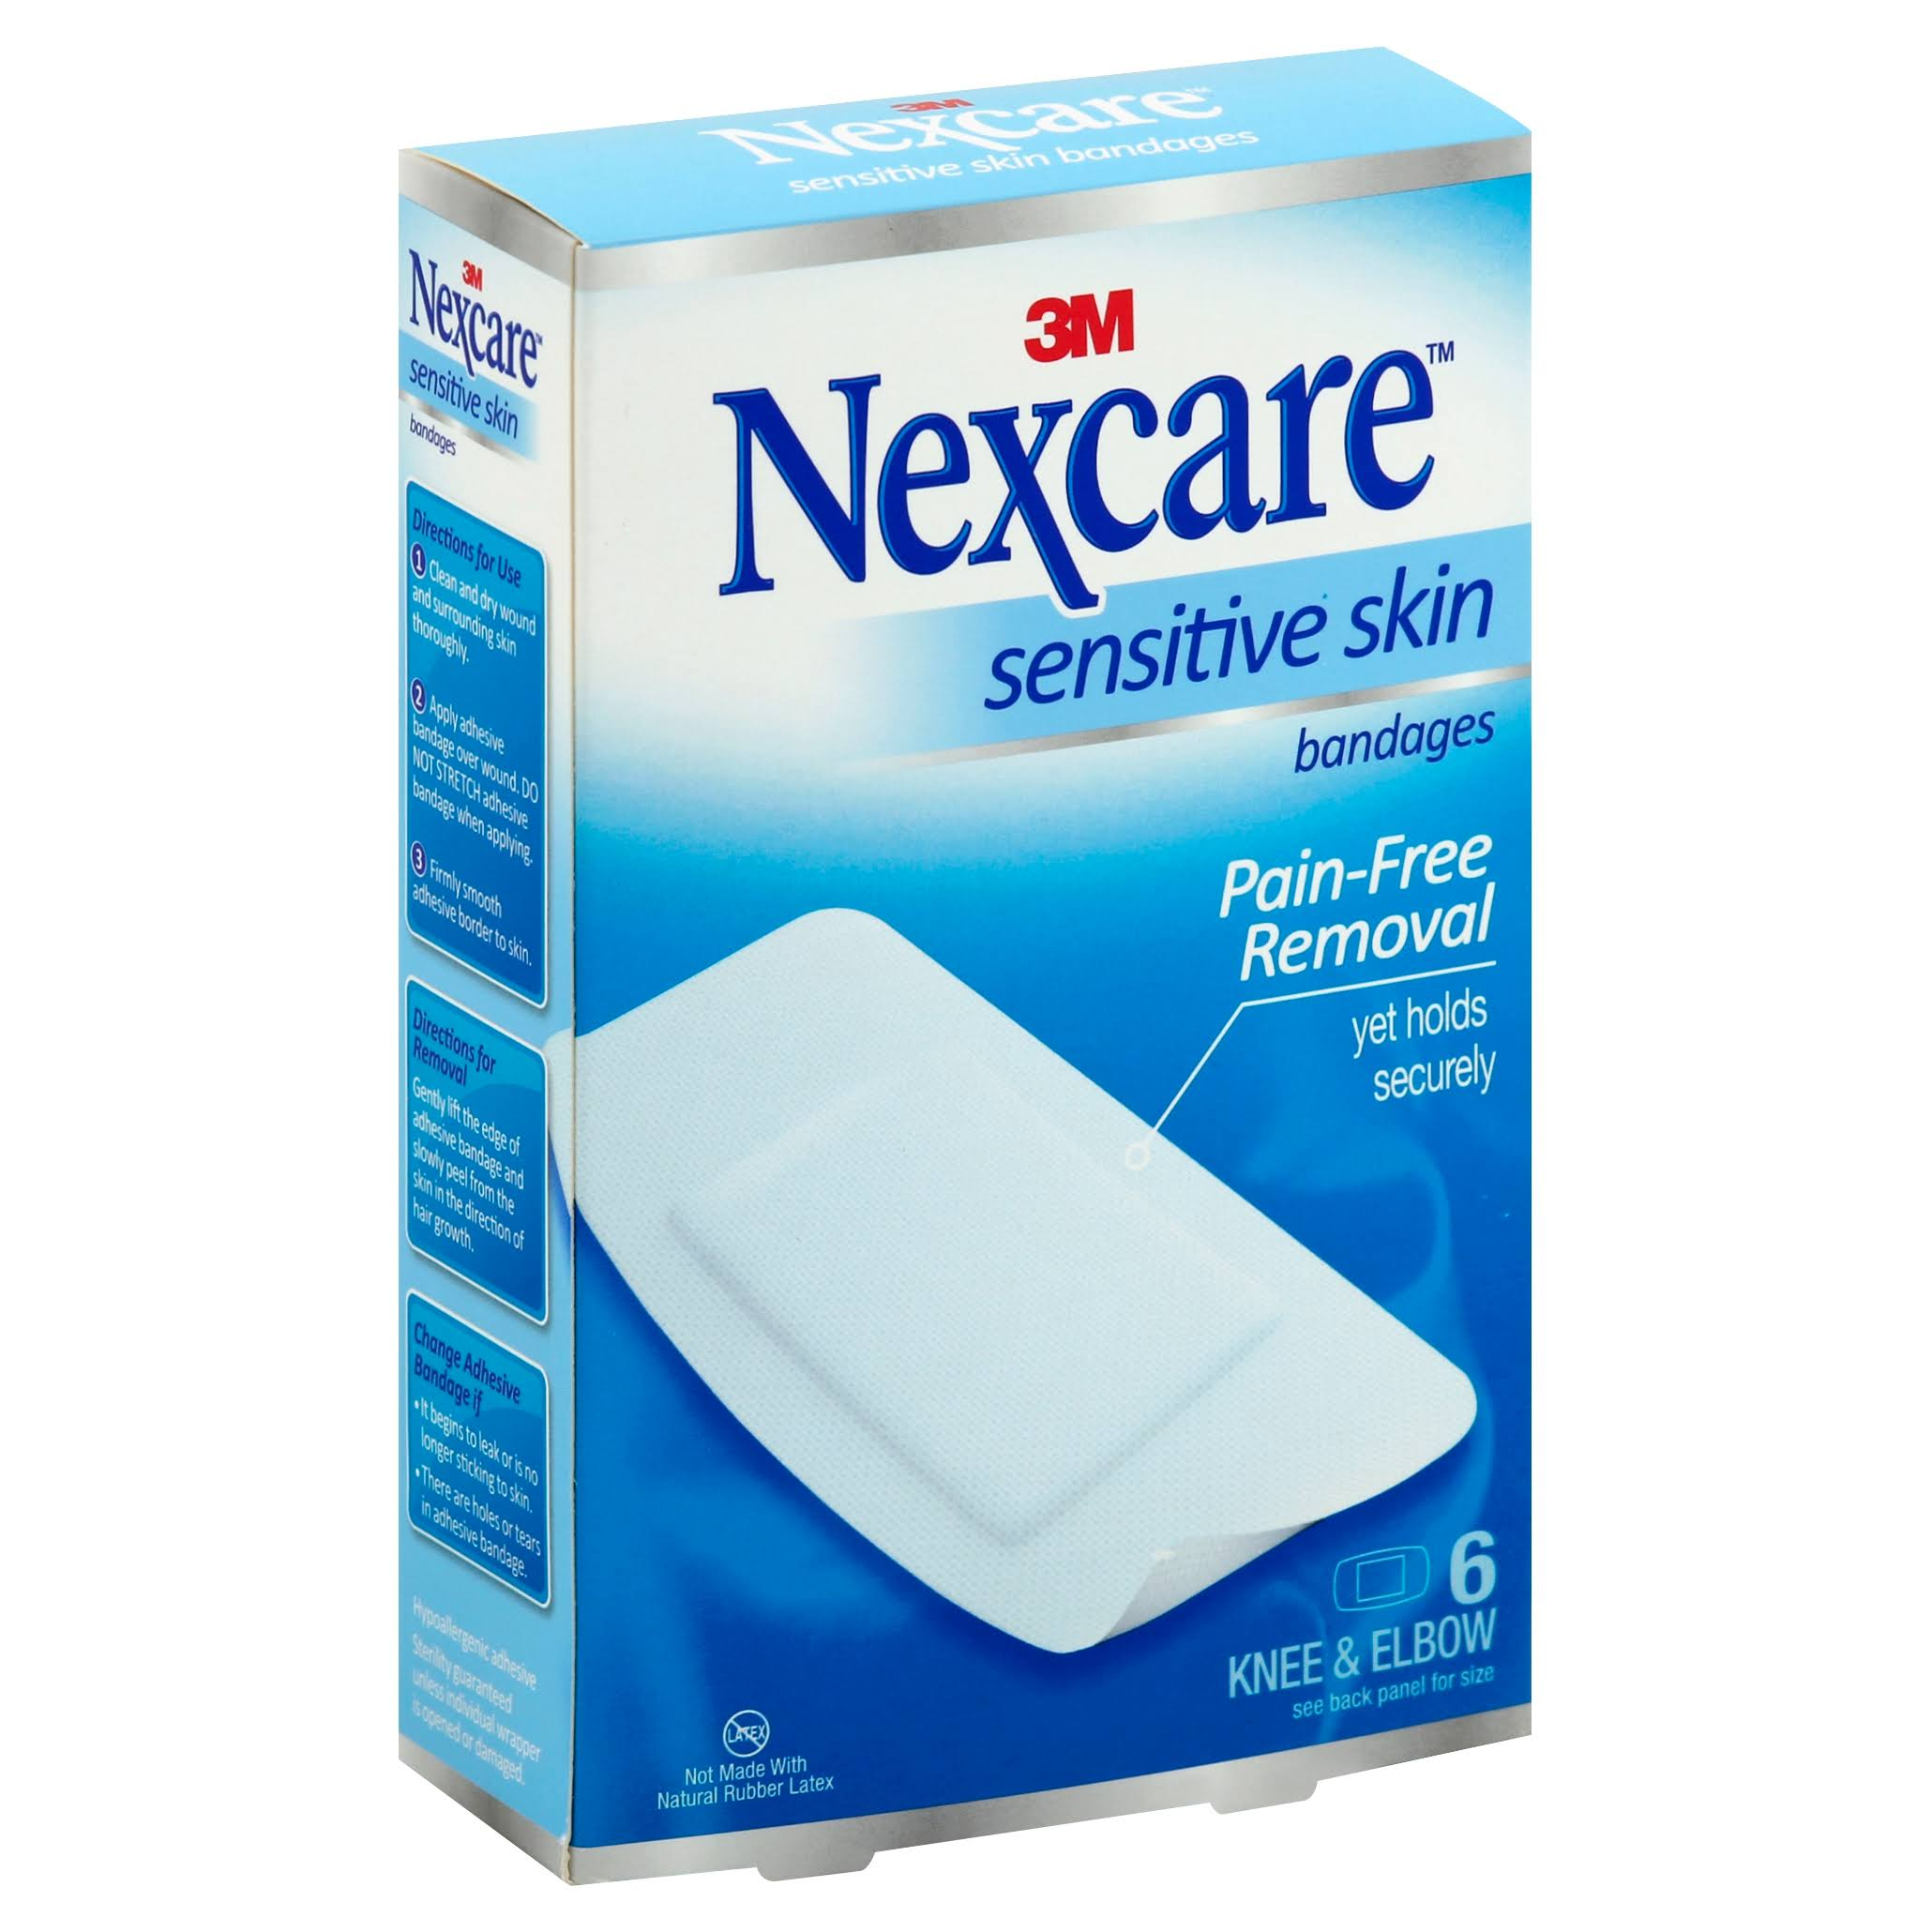 3M Nexcare Sensitive Skin Bandages - 6 Knee & Elbow